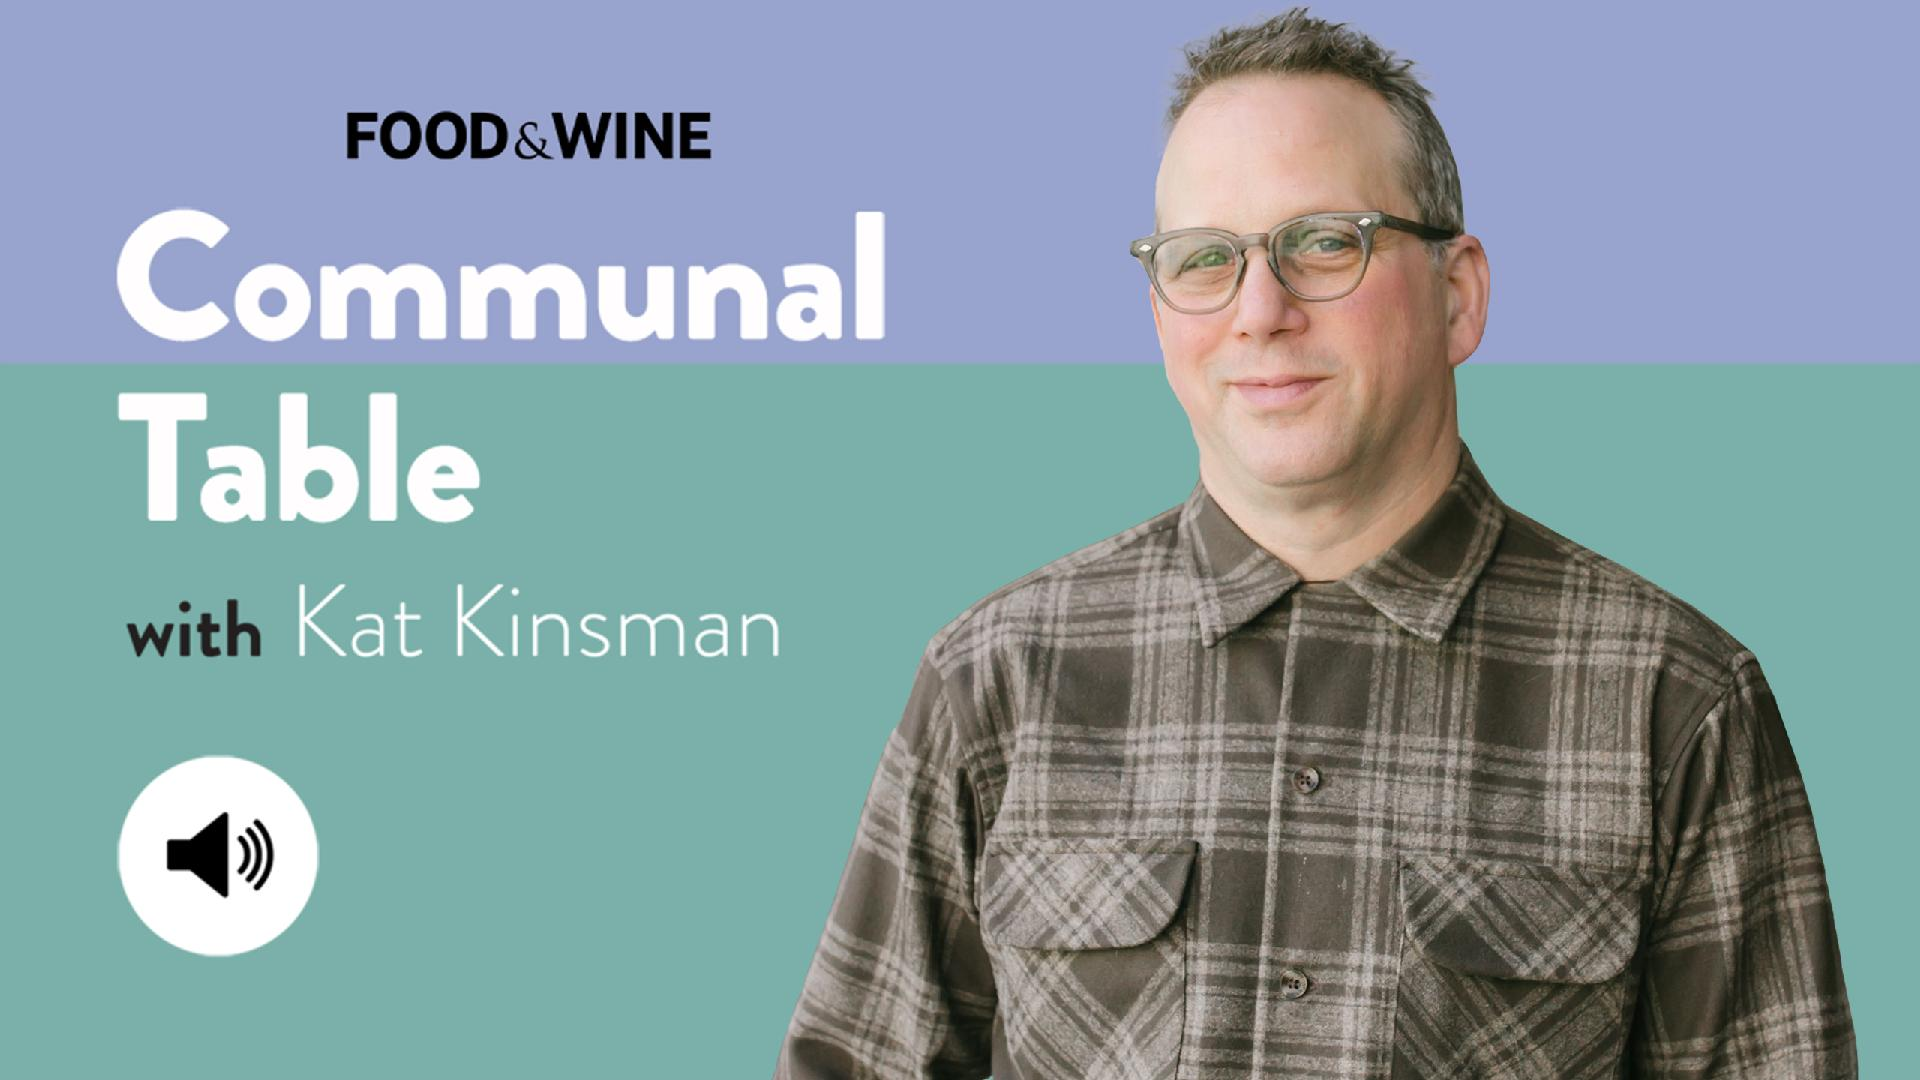 Communal Table Podcast: Paul Kahan